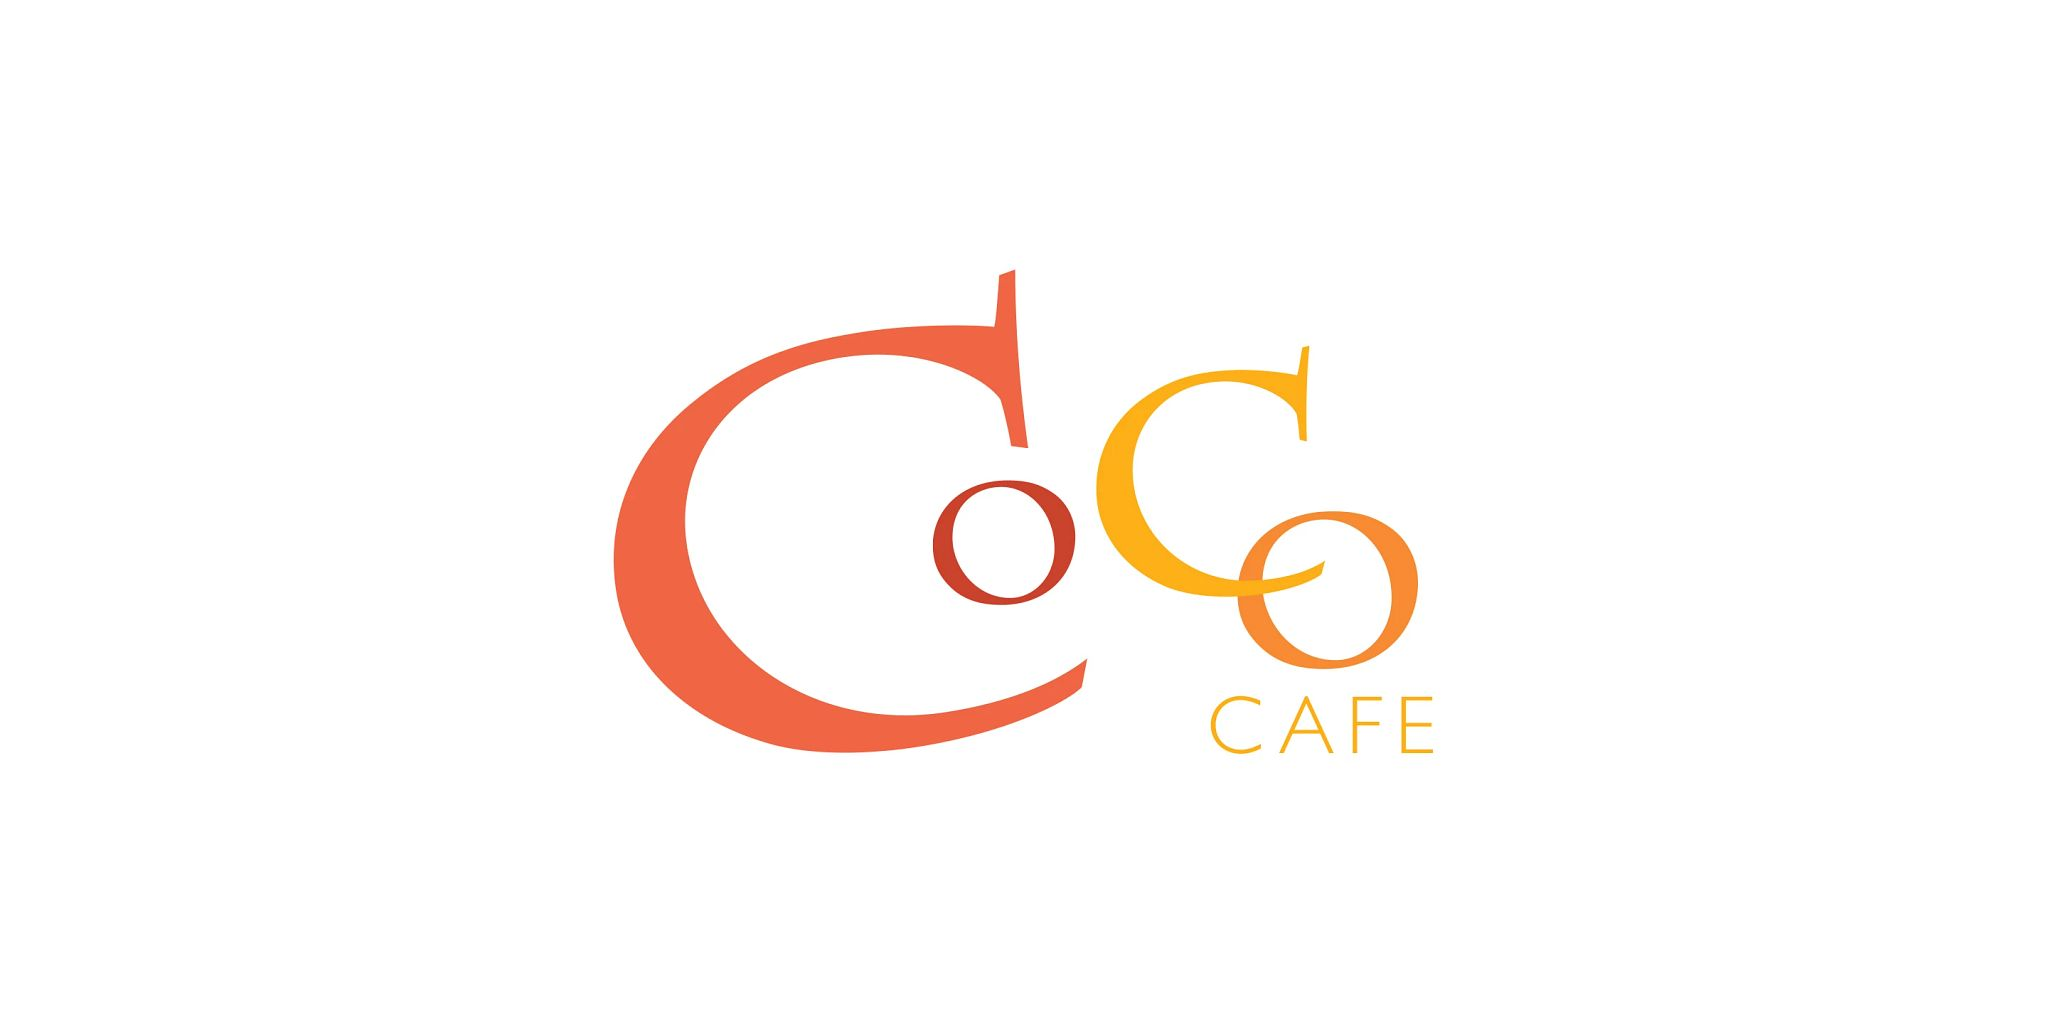 Coco Café Serving Morning Coffee and Late Night Bites